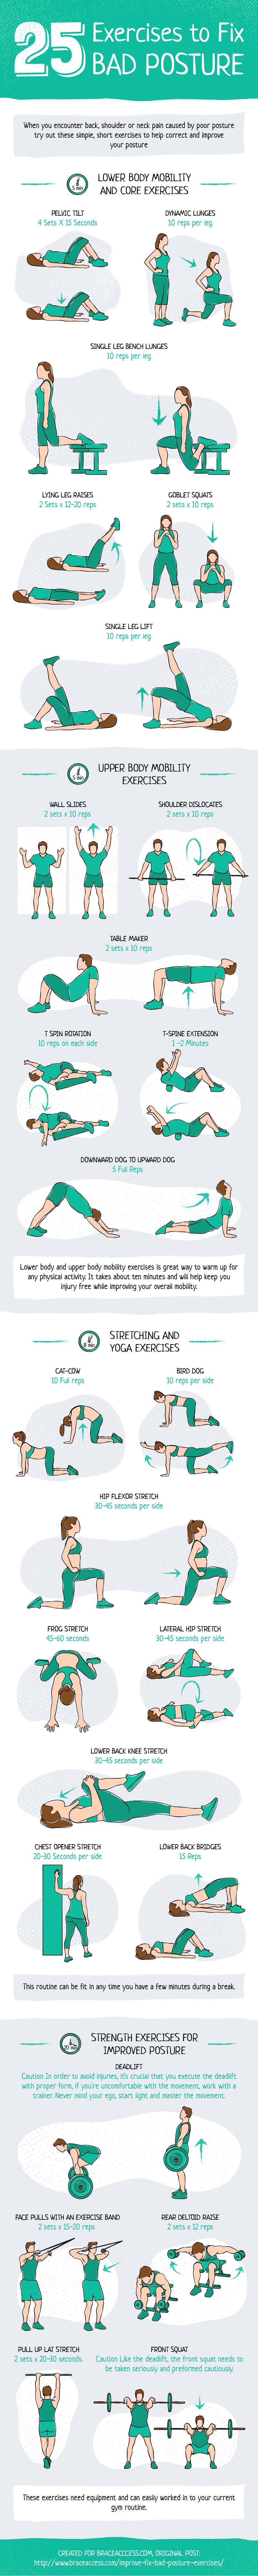 Butt-in-Chair Syndrome: Develop Correct Posture with These 25 Exercises - Infographic